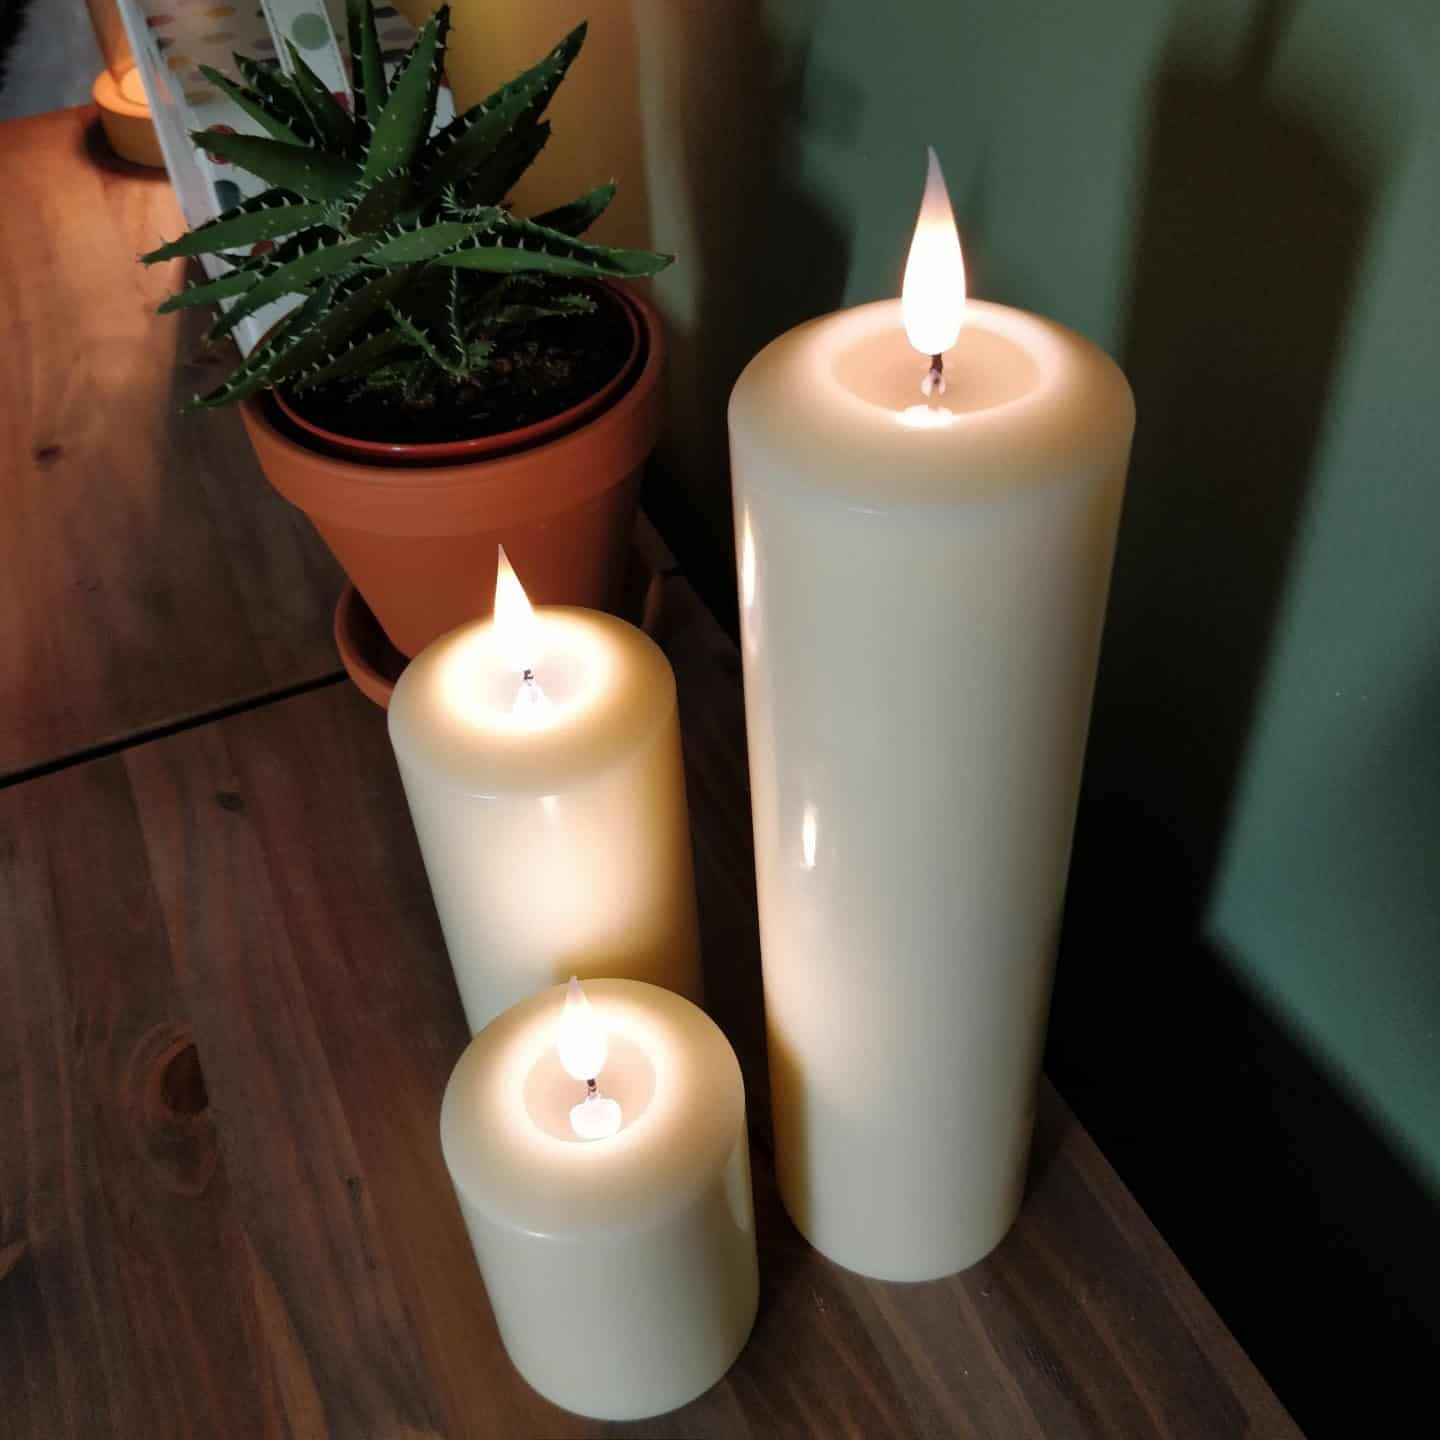 Realistic LED candles from Candled on a sideboard 8